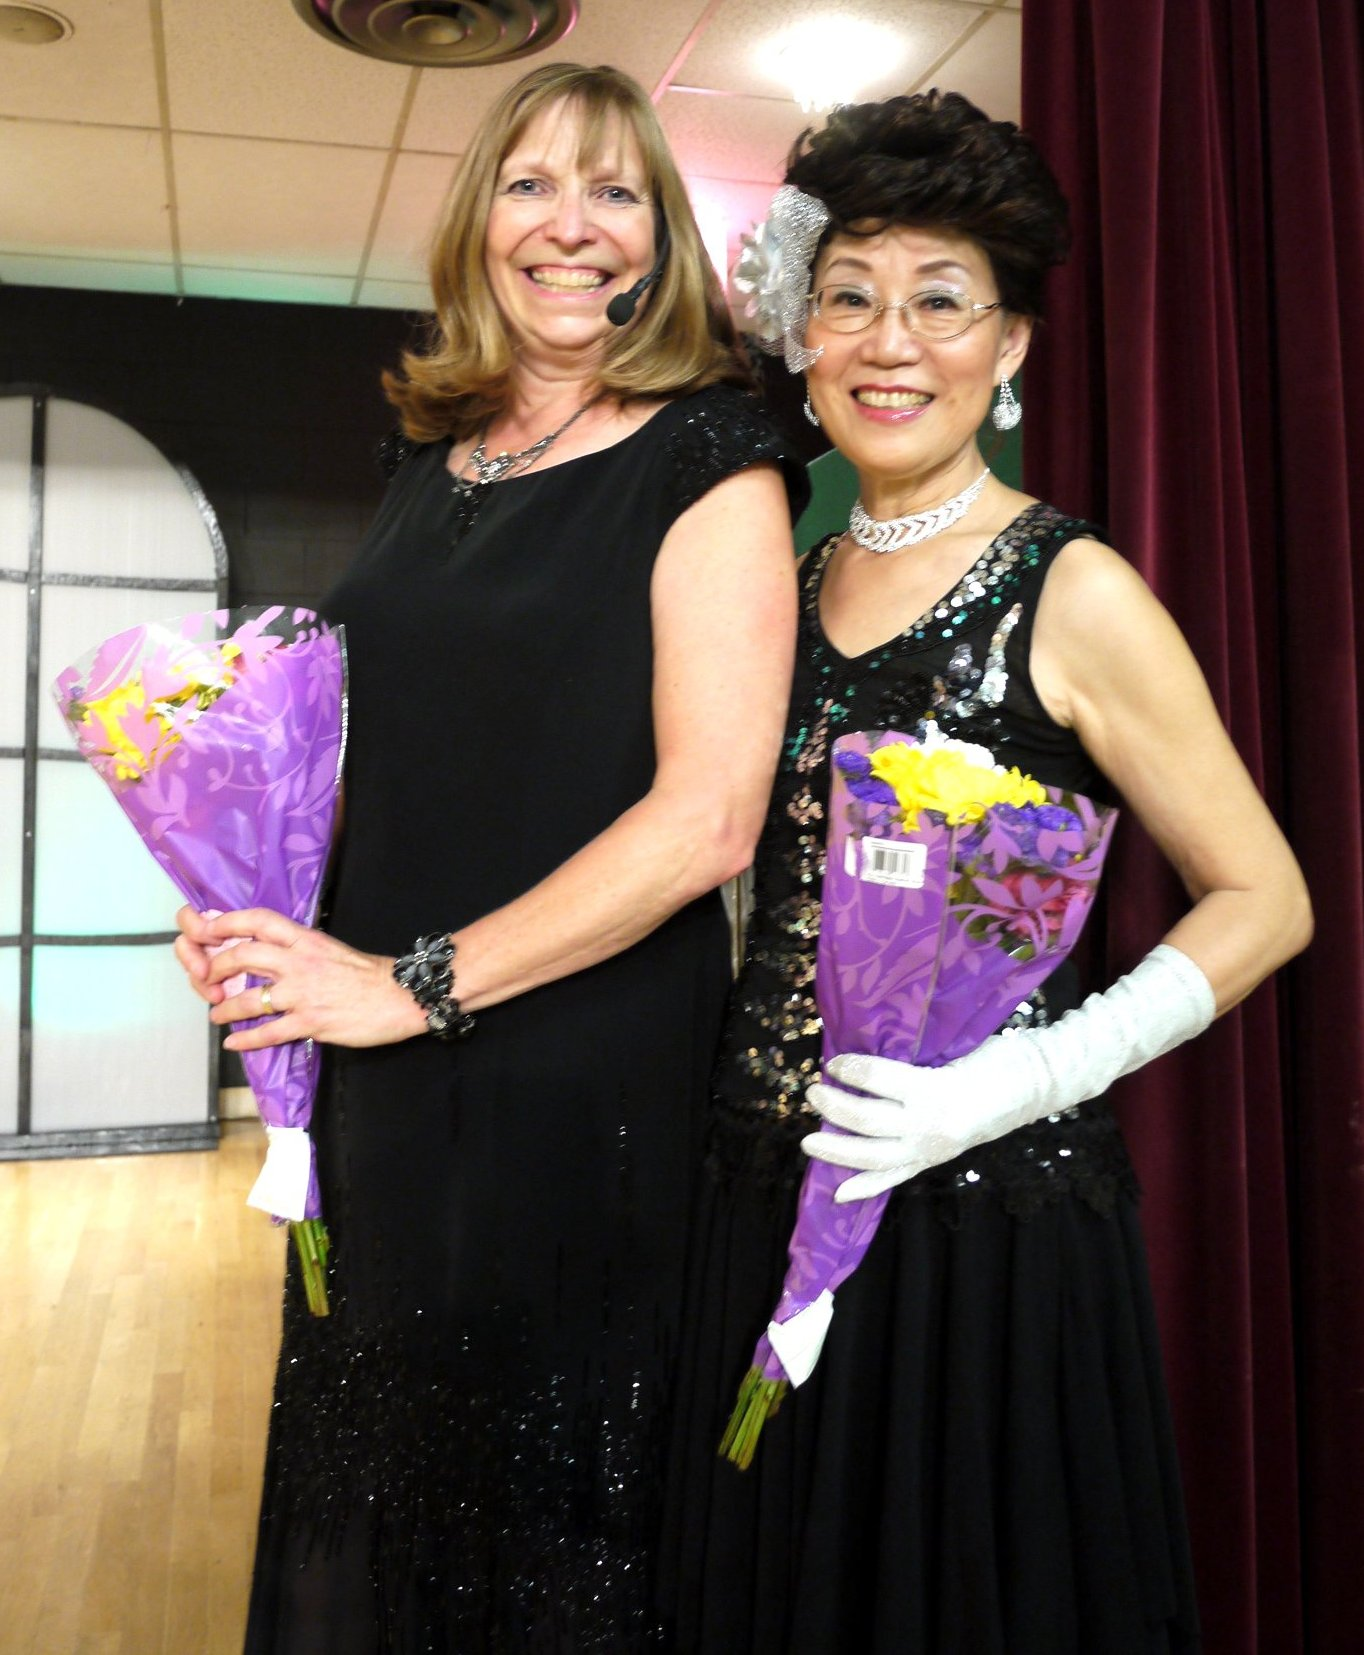 Laura Surman and Kathy Lin, Performers at 20th Century: The Musical, September 2012